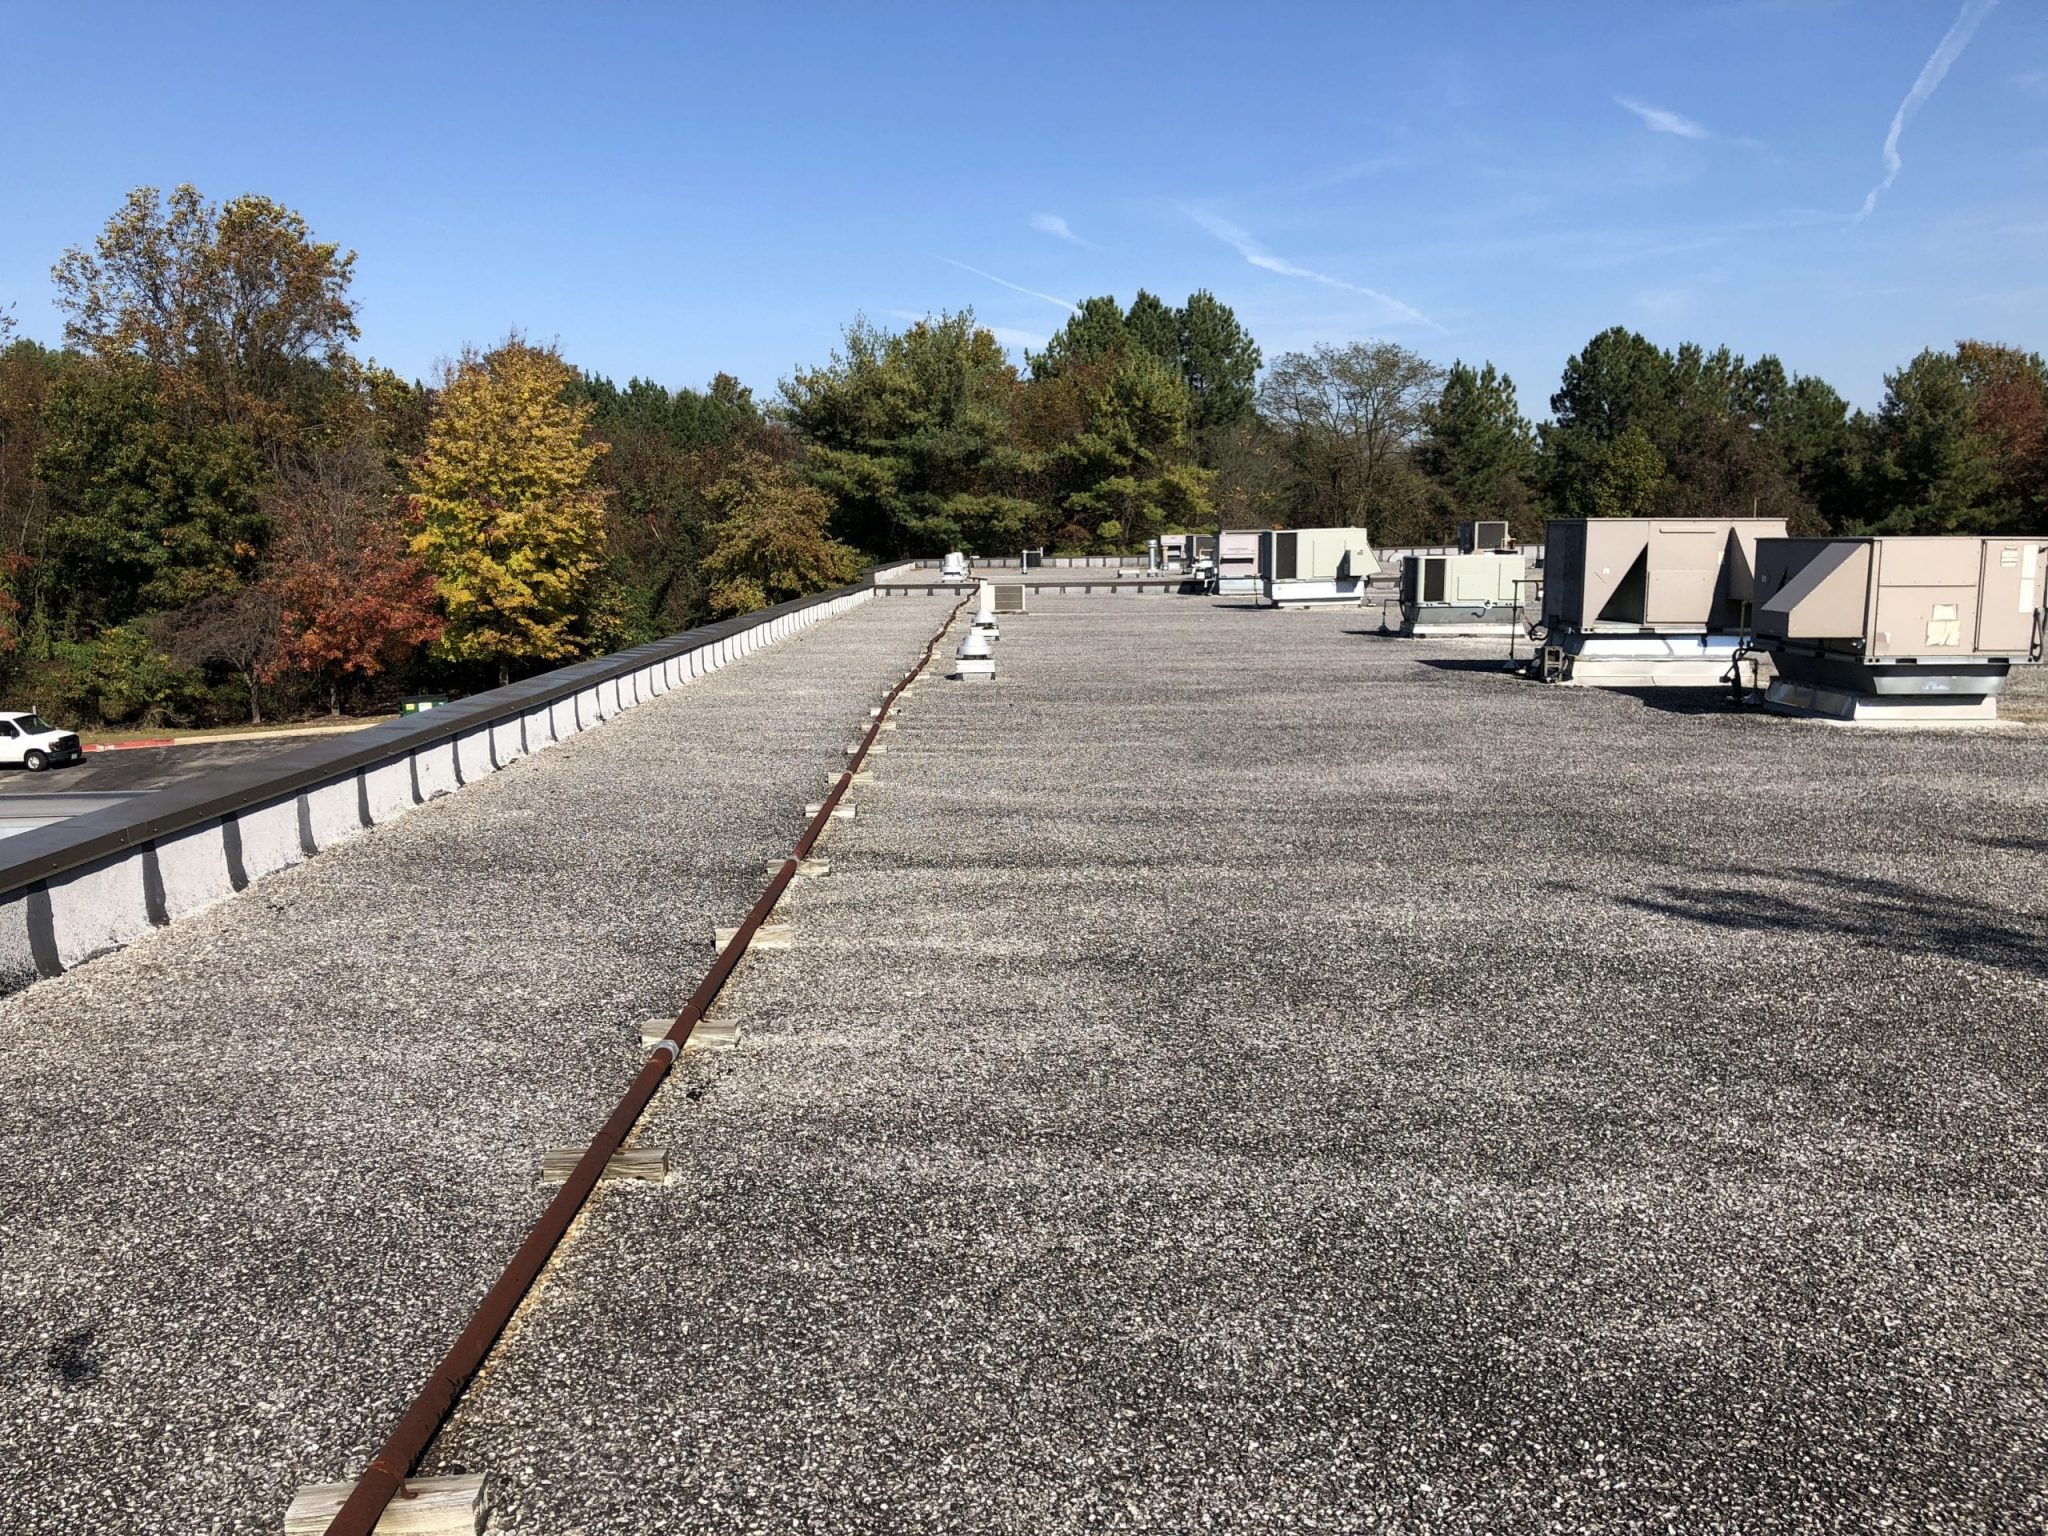 Roof photo before commercial solar installation